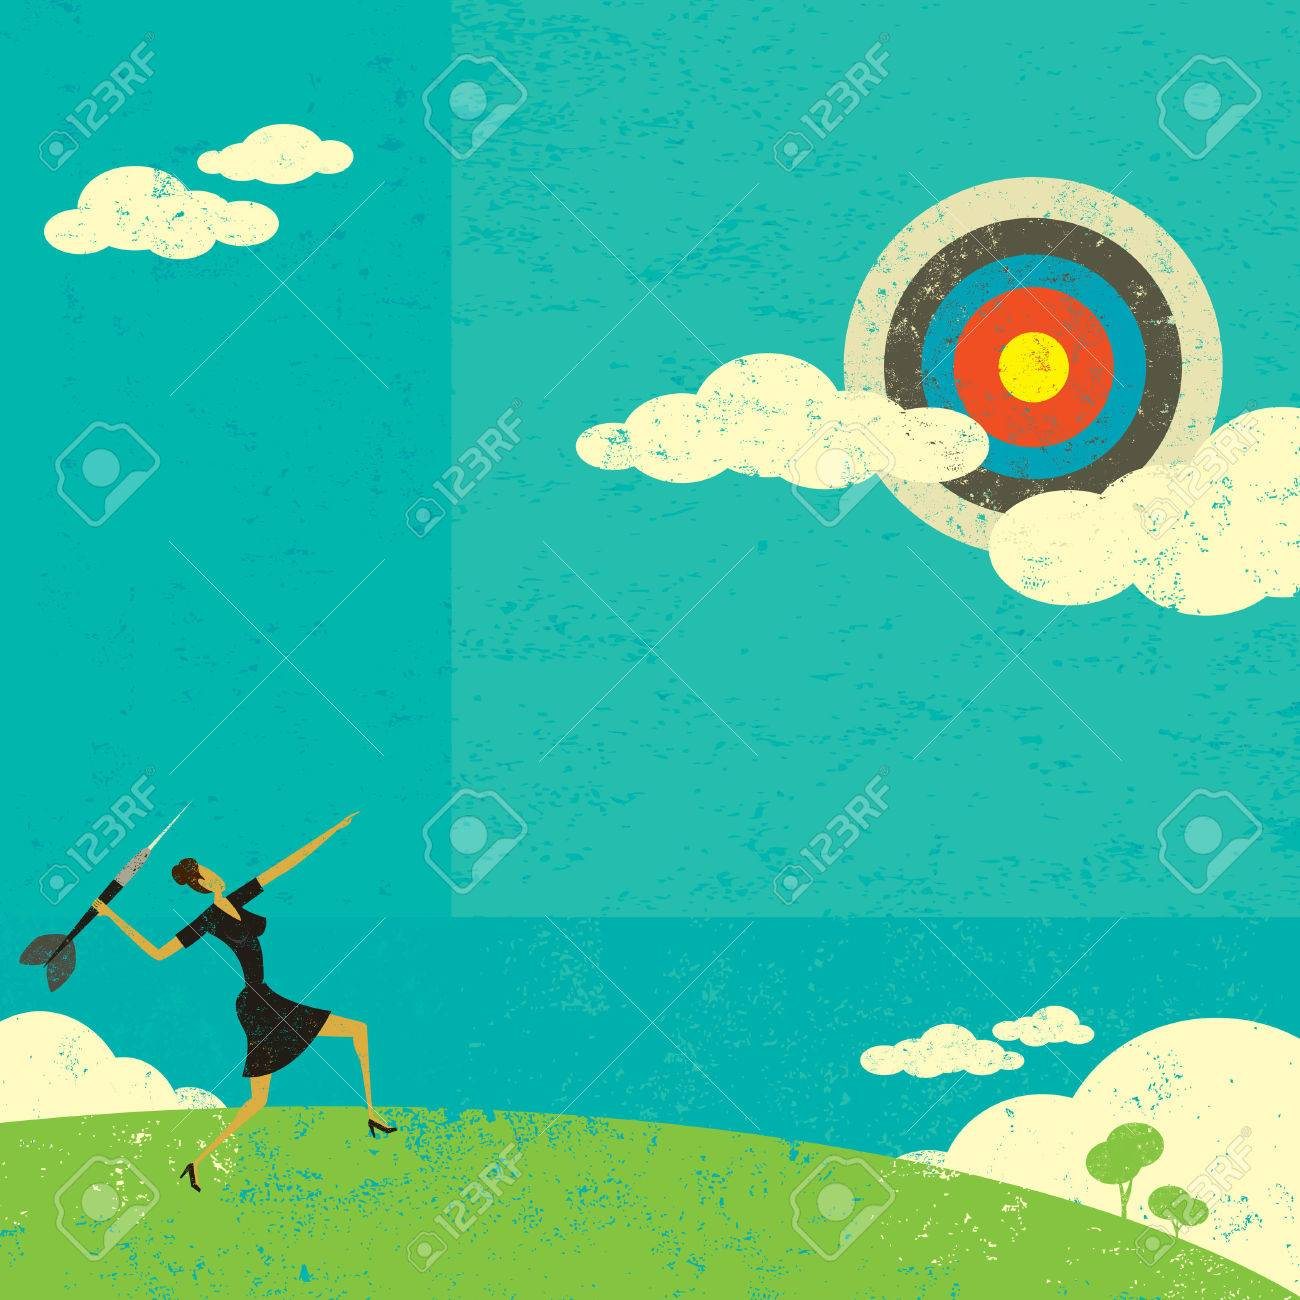 Aiming for a high target - 52961686